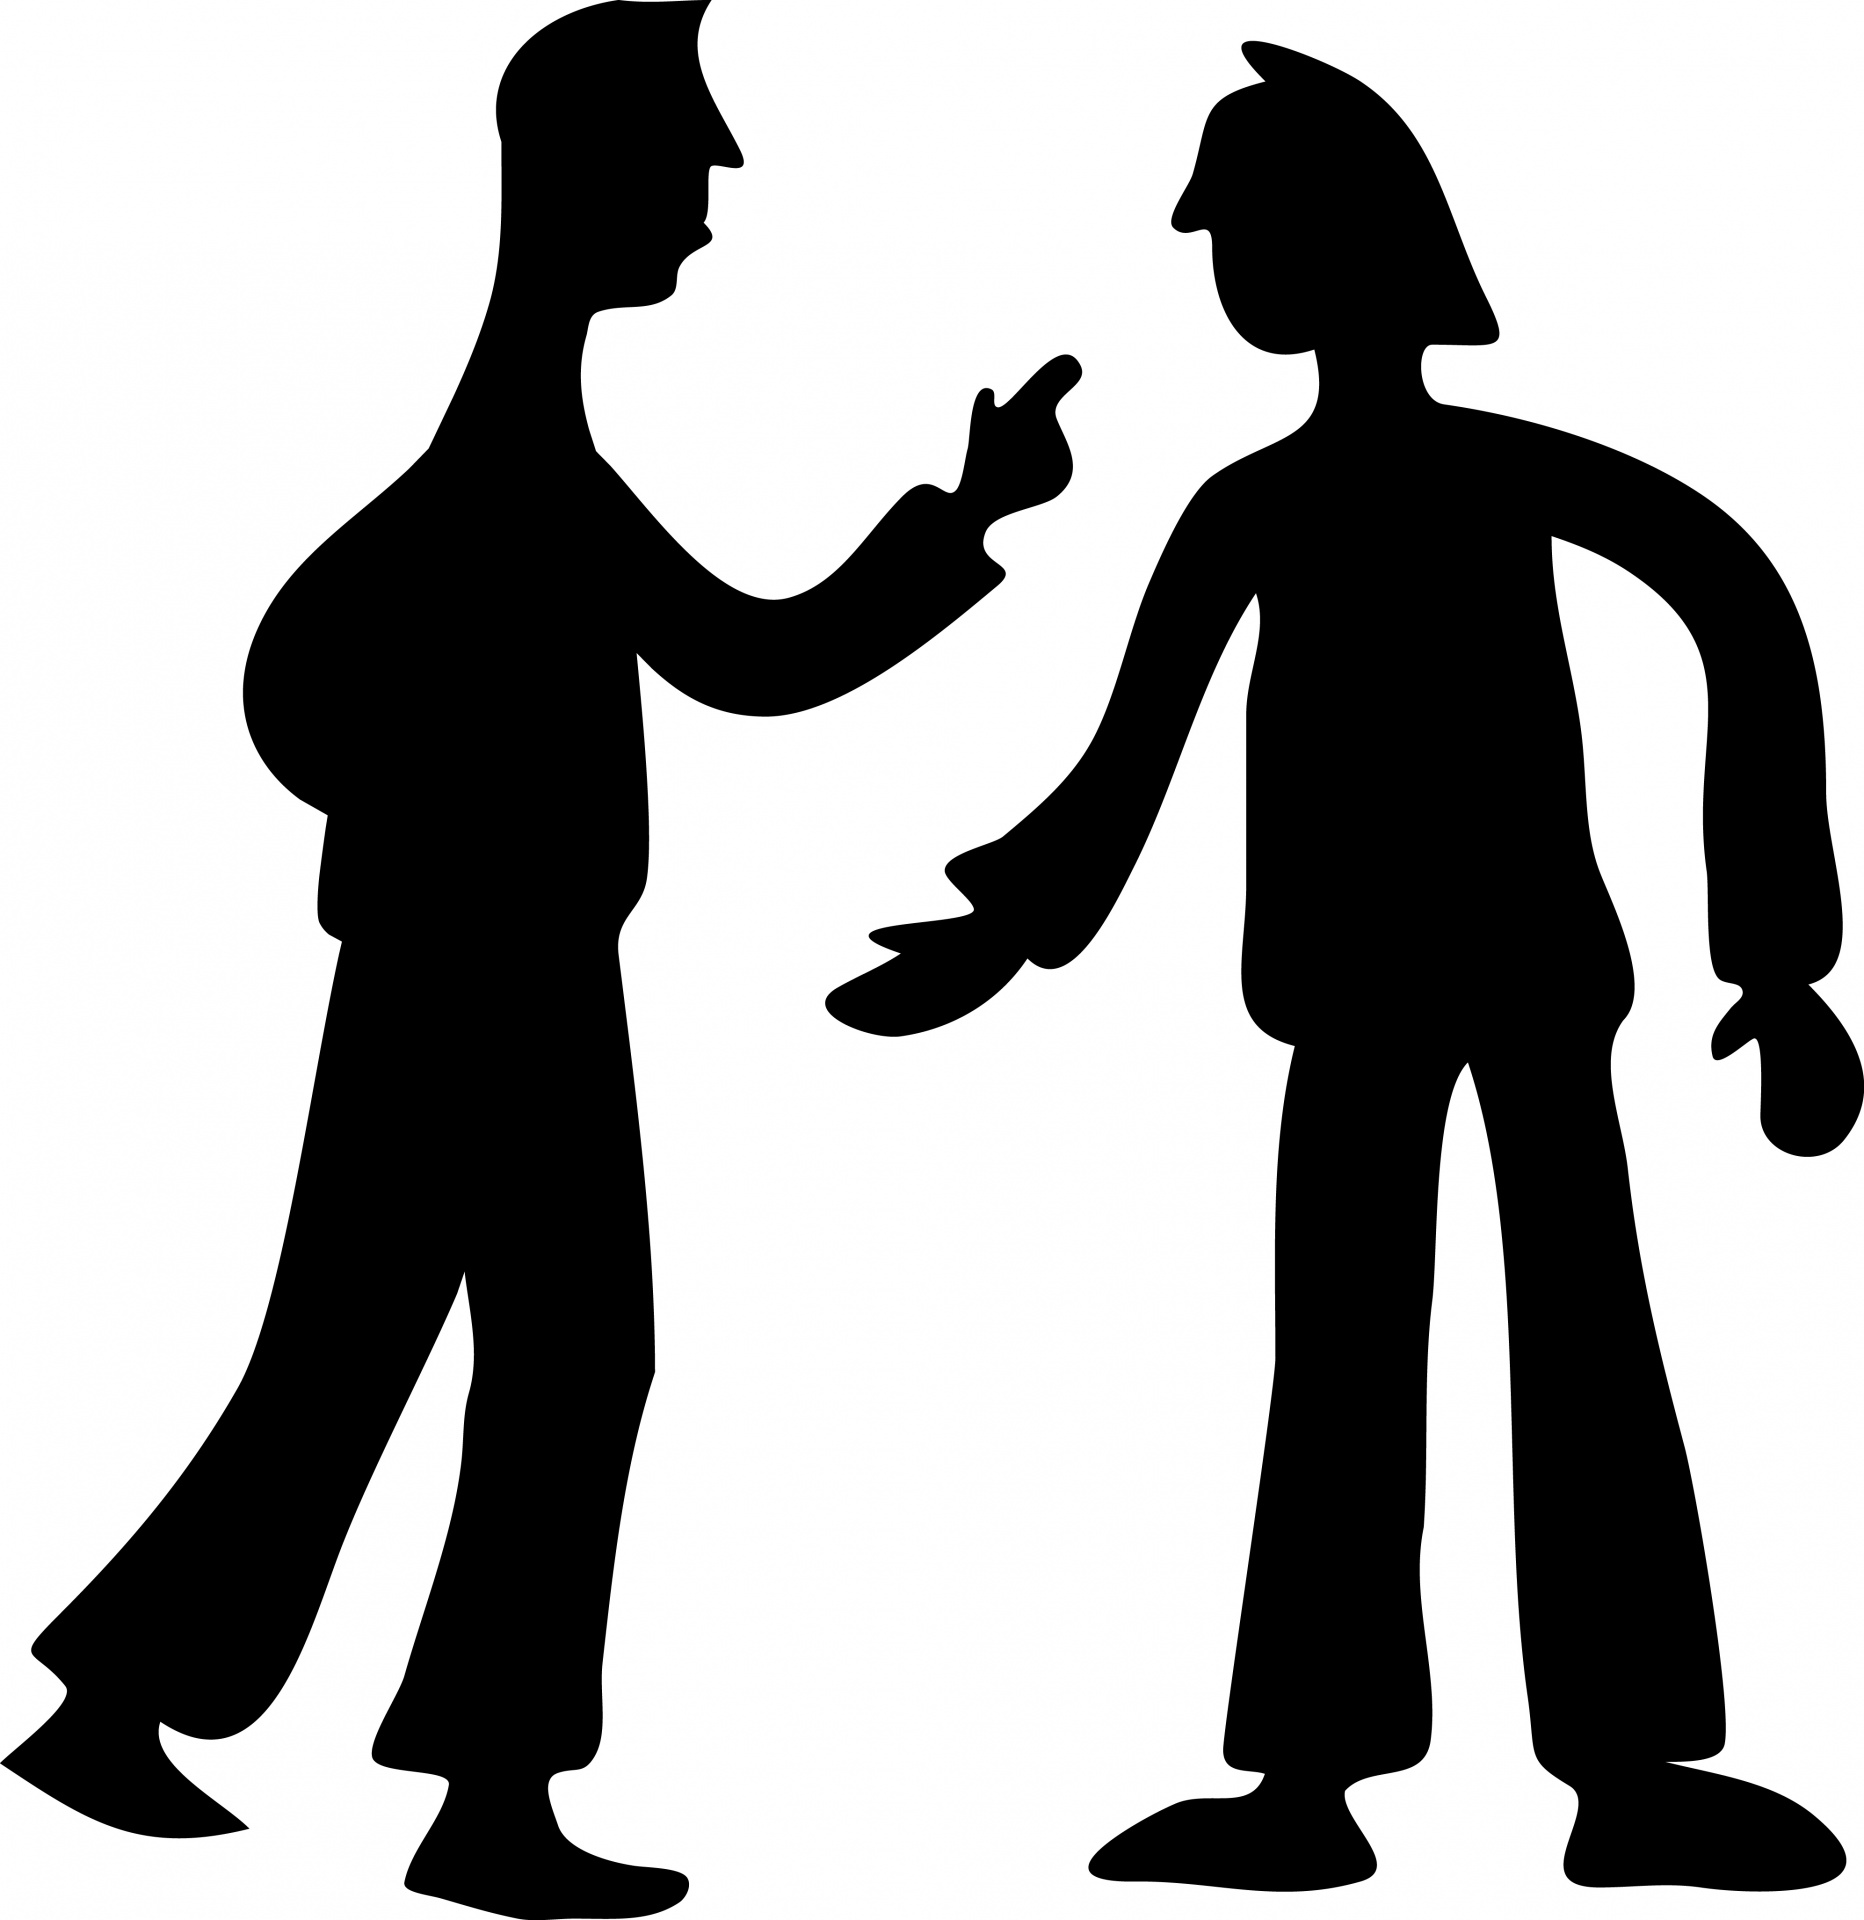 Fighter clipart conflict. Fight silhouette at getdrawings